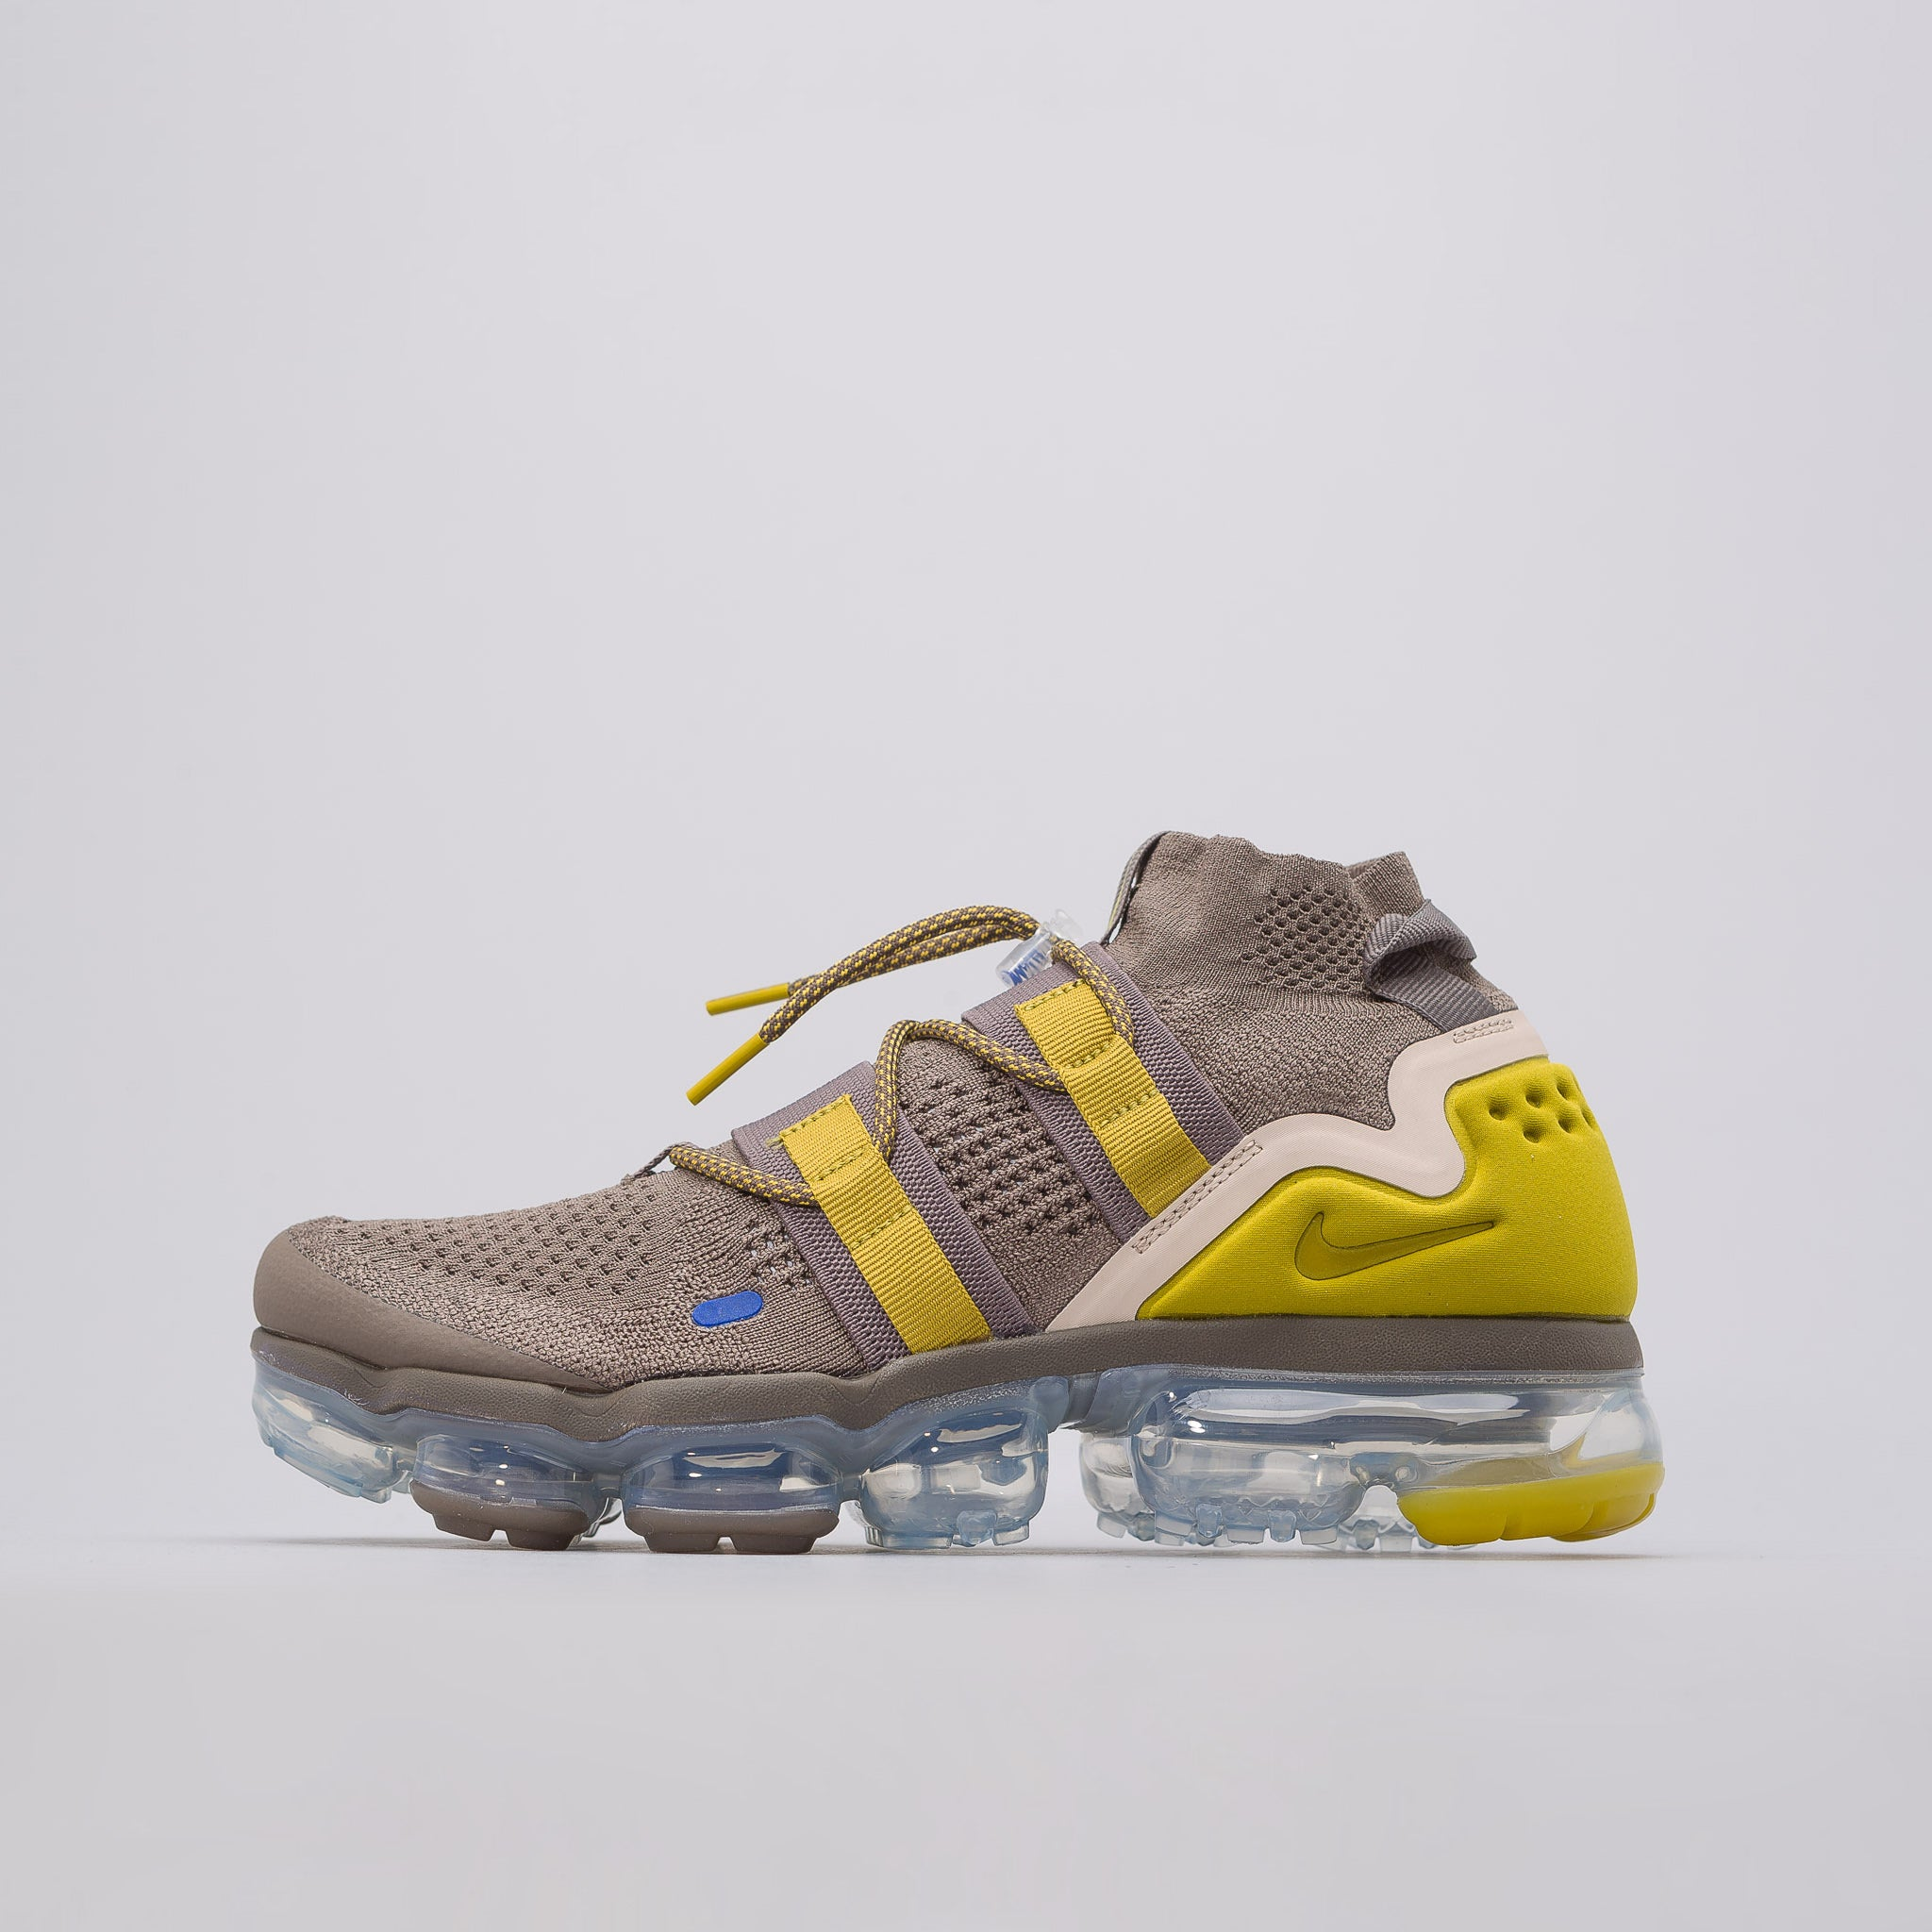 new concept 4ce4f 637d5 The Best Nike Air Vapormax Colorways (Available Now) Cult Edge